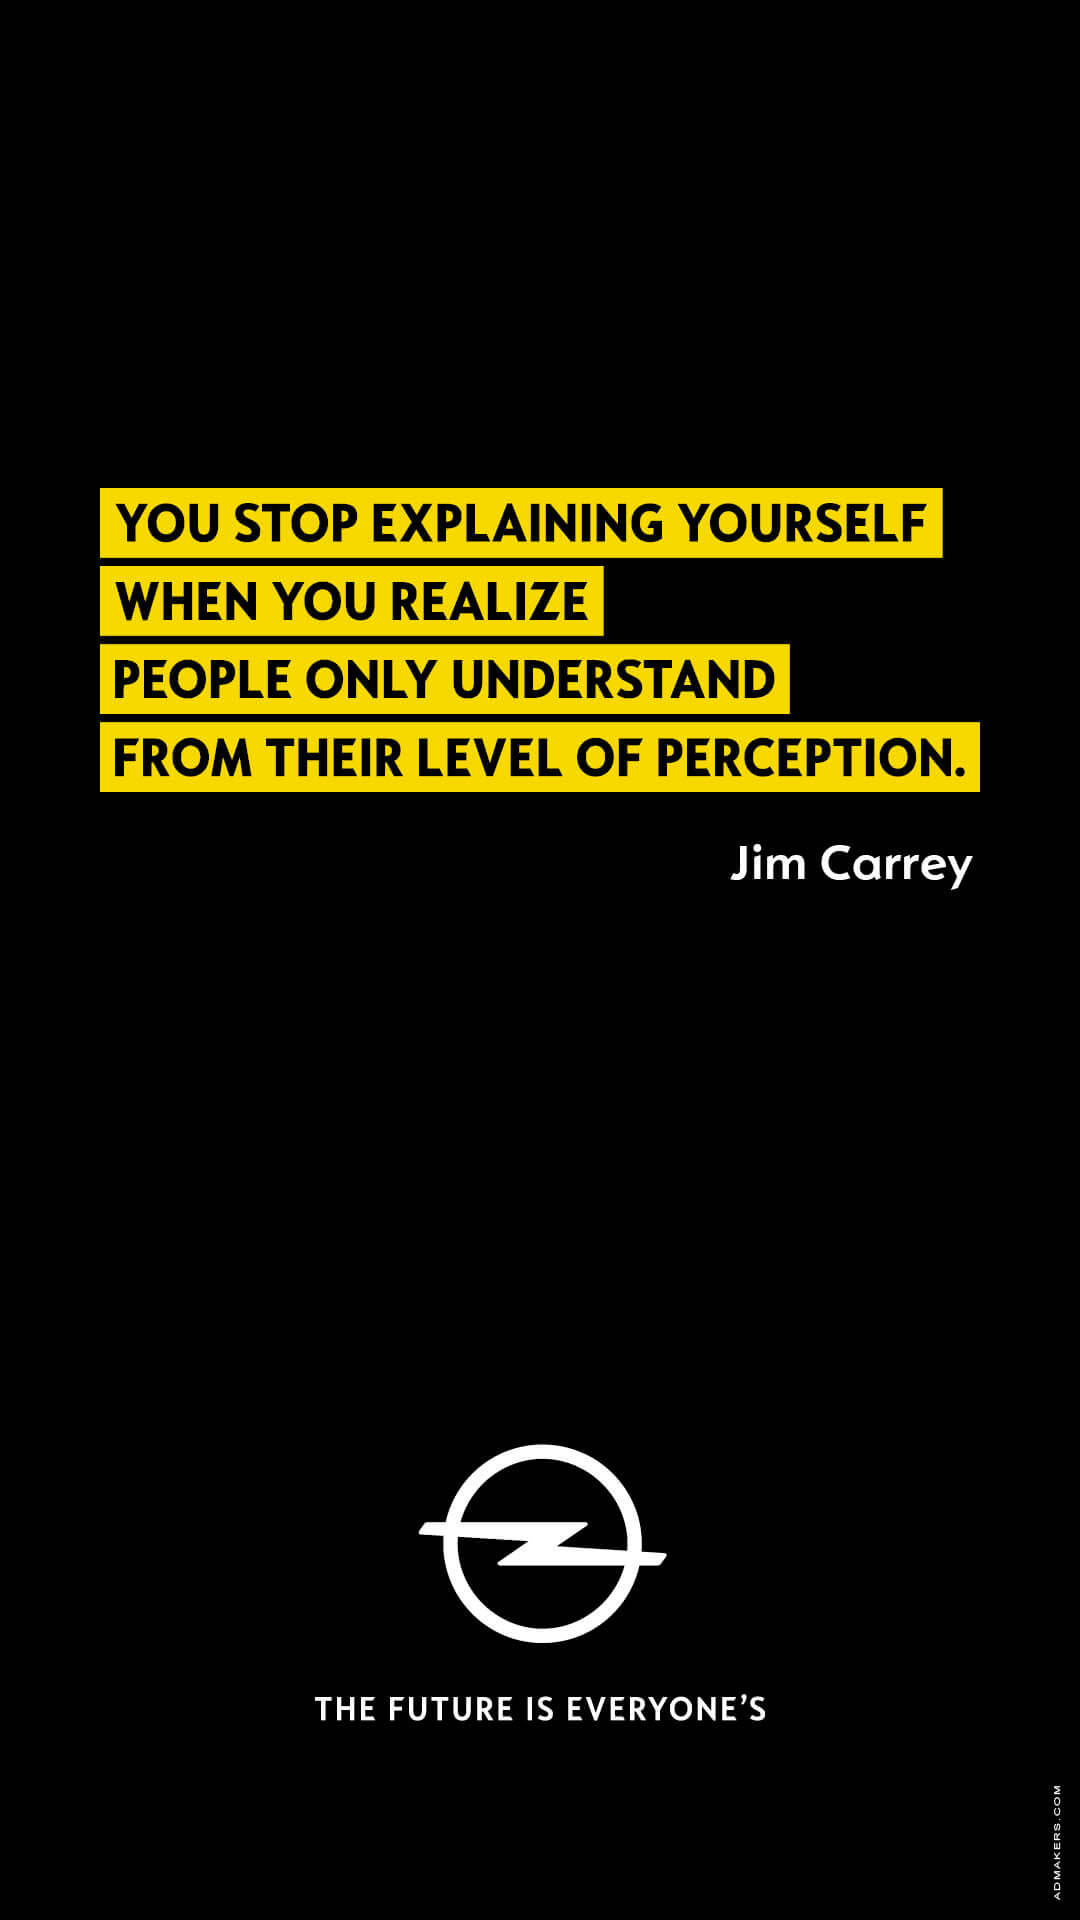 You stop explaining yourself when you realize people only understand from their level of perception.